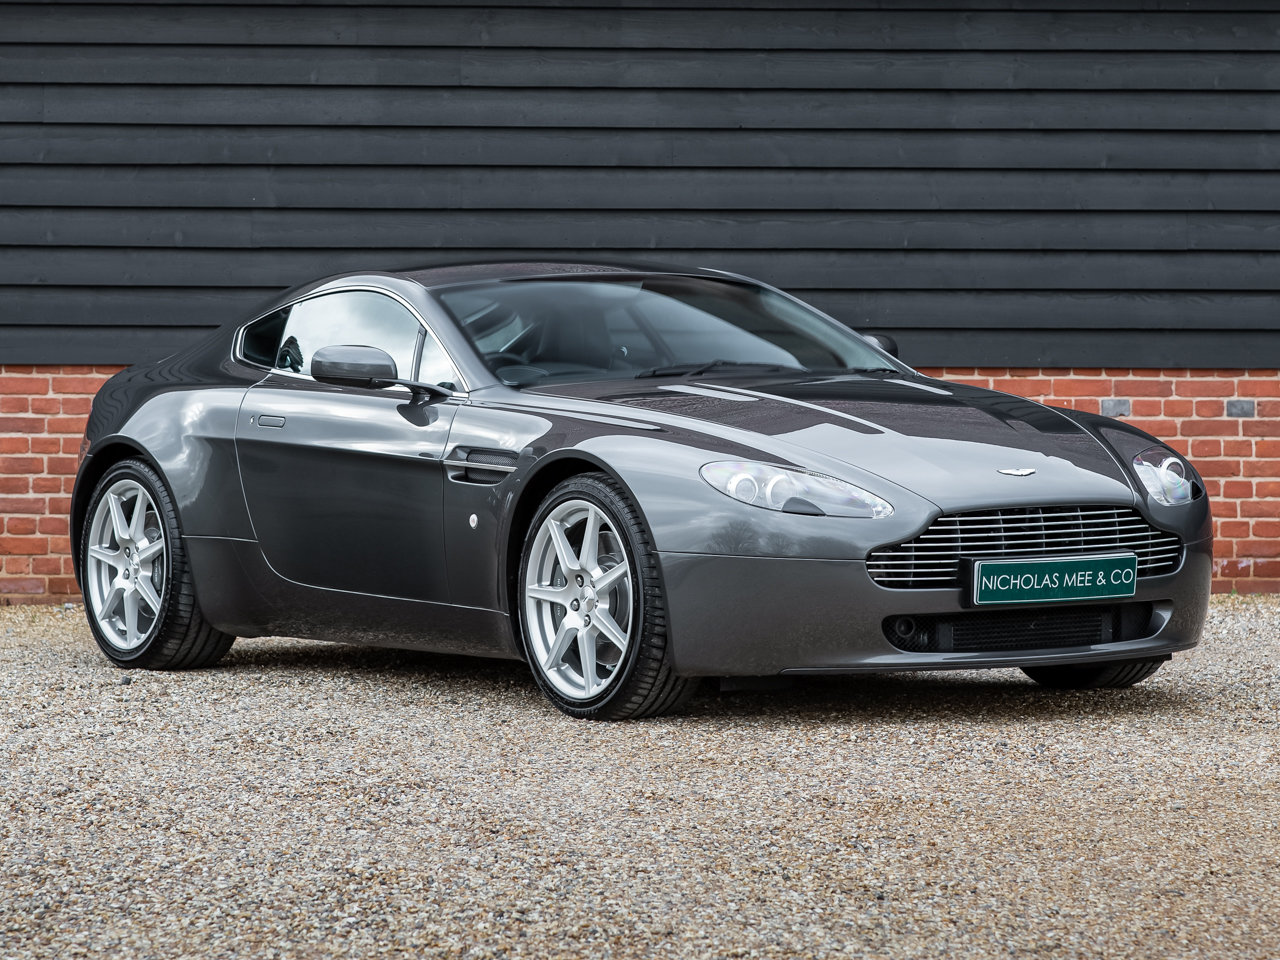 2008 Aston Martin V8 Vantage - Manual For Sale (picture 1 of 12)